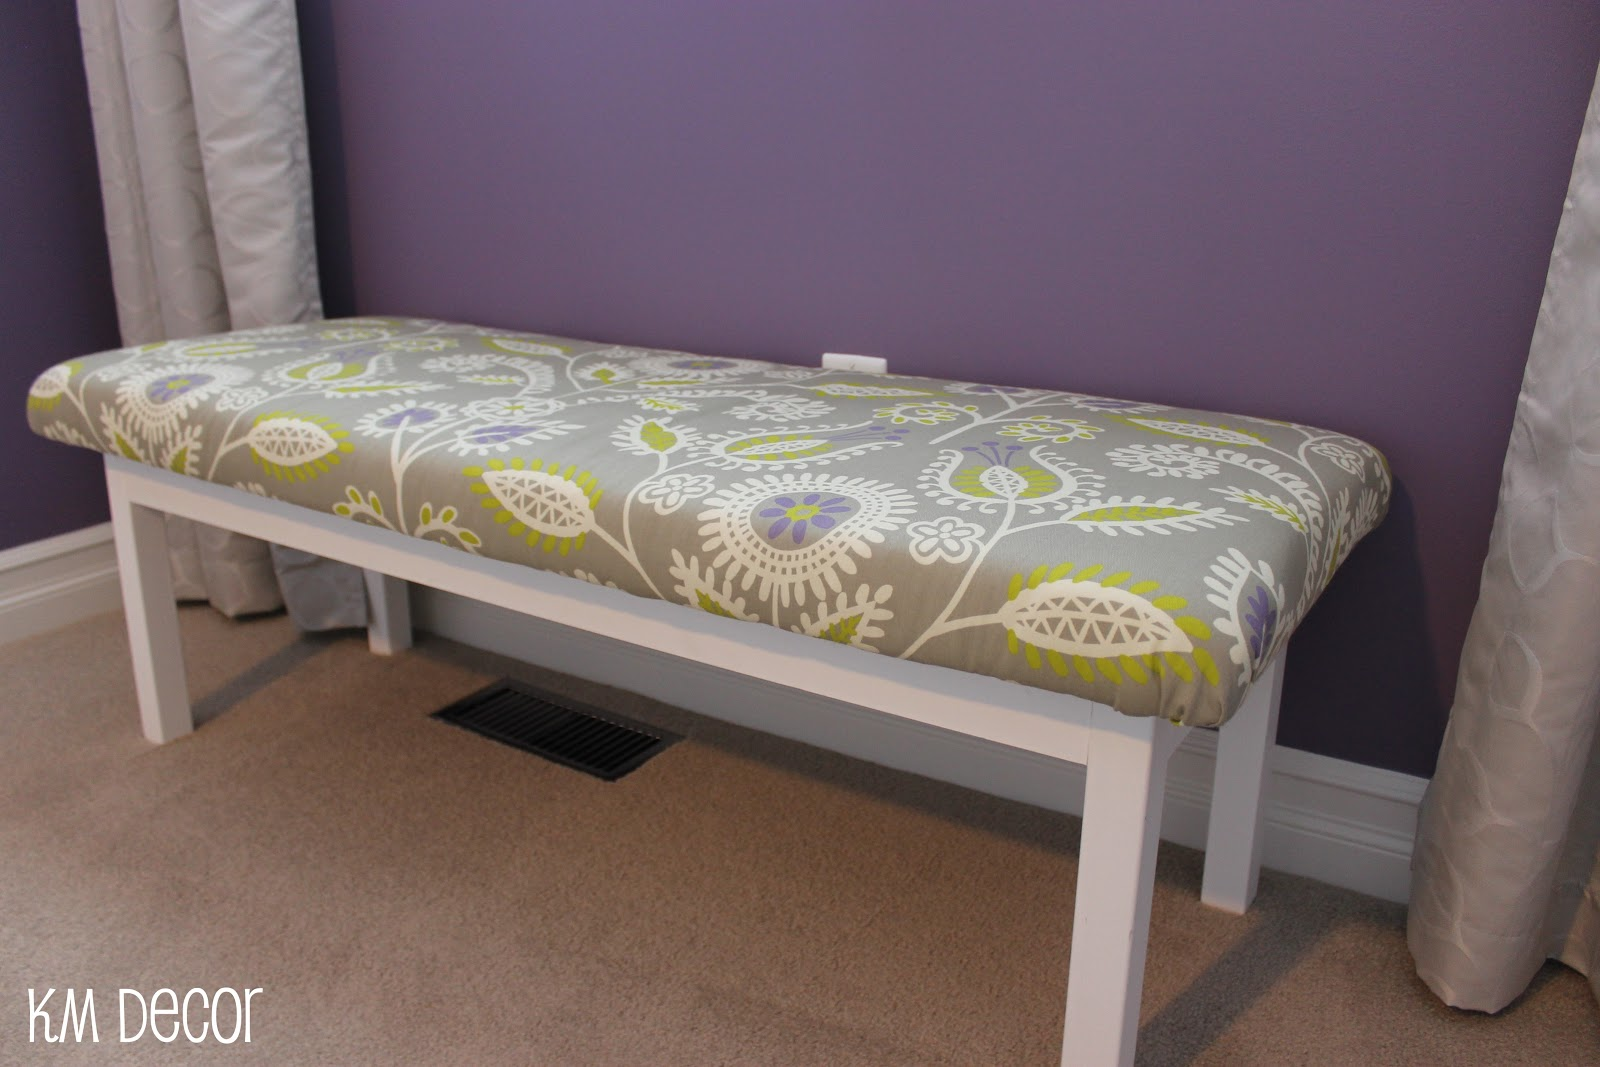 KM Decor: DIY: Upholstered Bench